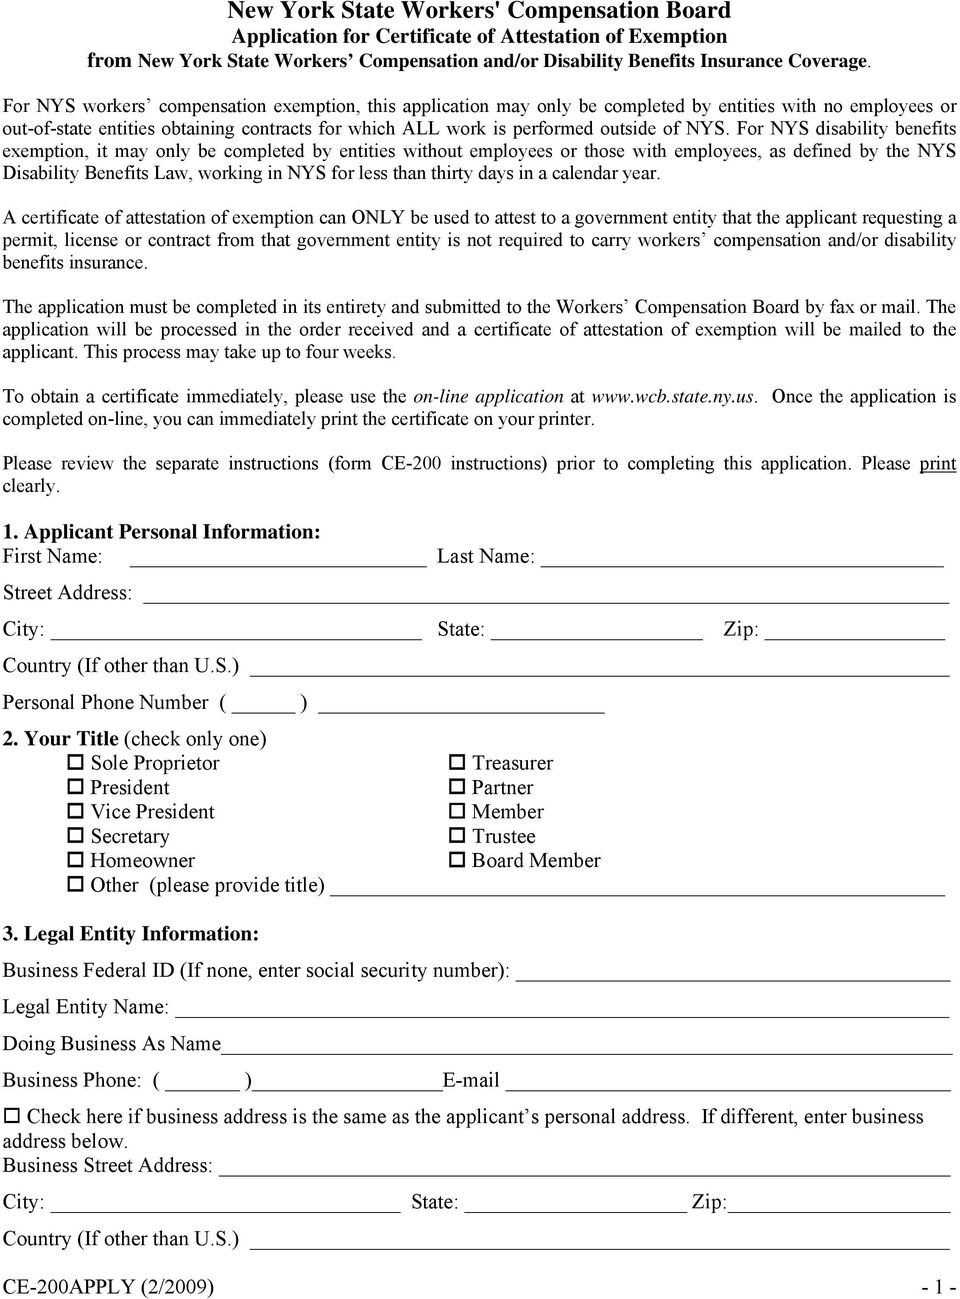 Ce 200 Certificate Of Attestation Of Exemption From New York State